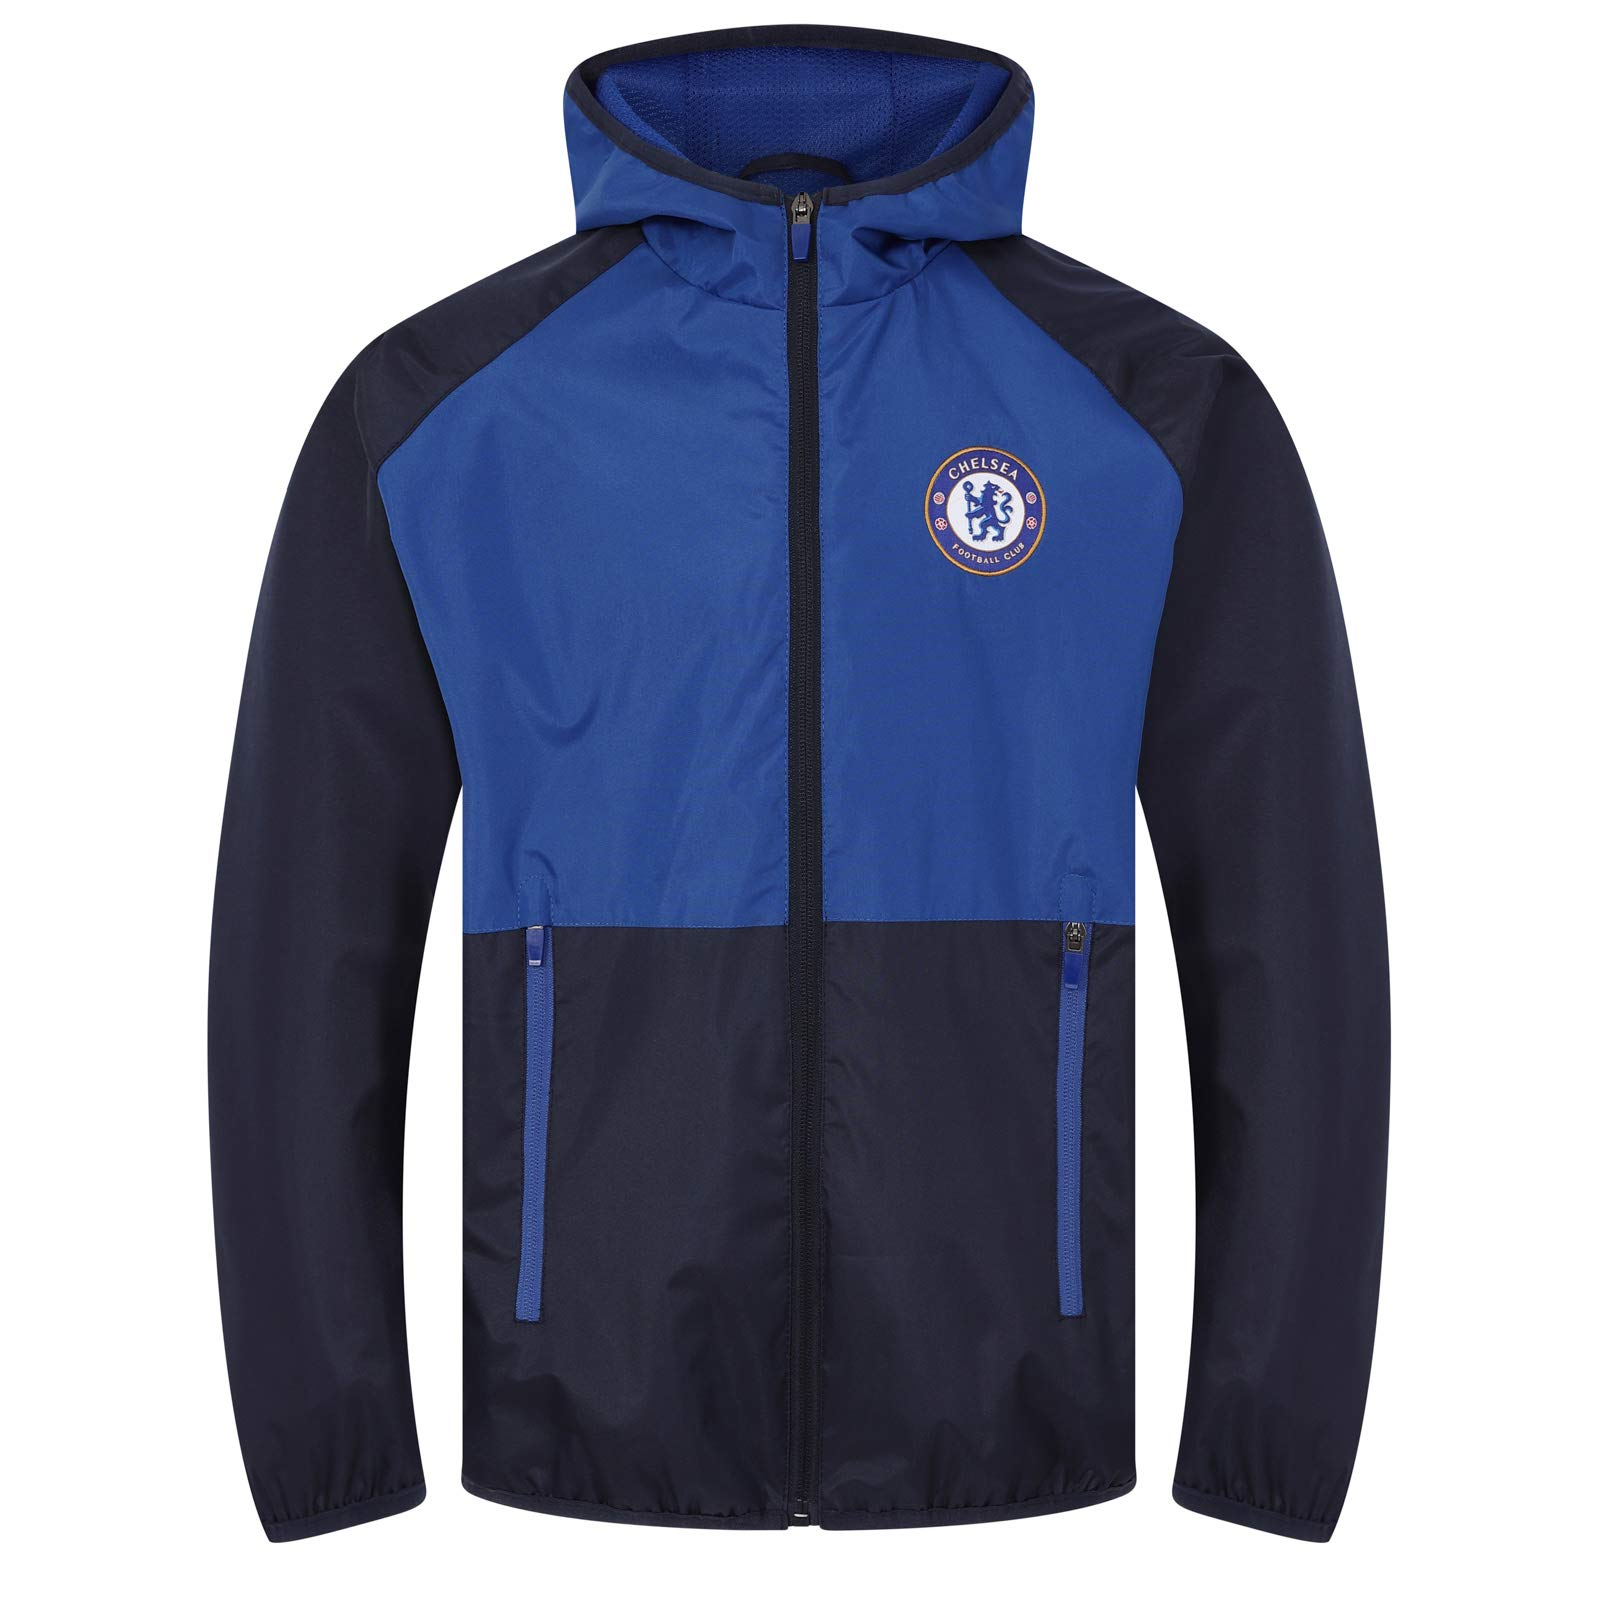 Chelsea FC Official Soccer Gift Boys Shower Jacket Windbreaker Navy 2-3 Years by Chelsea F.C.